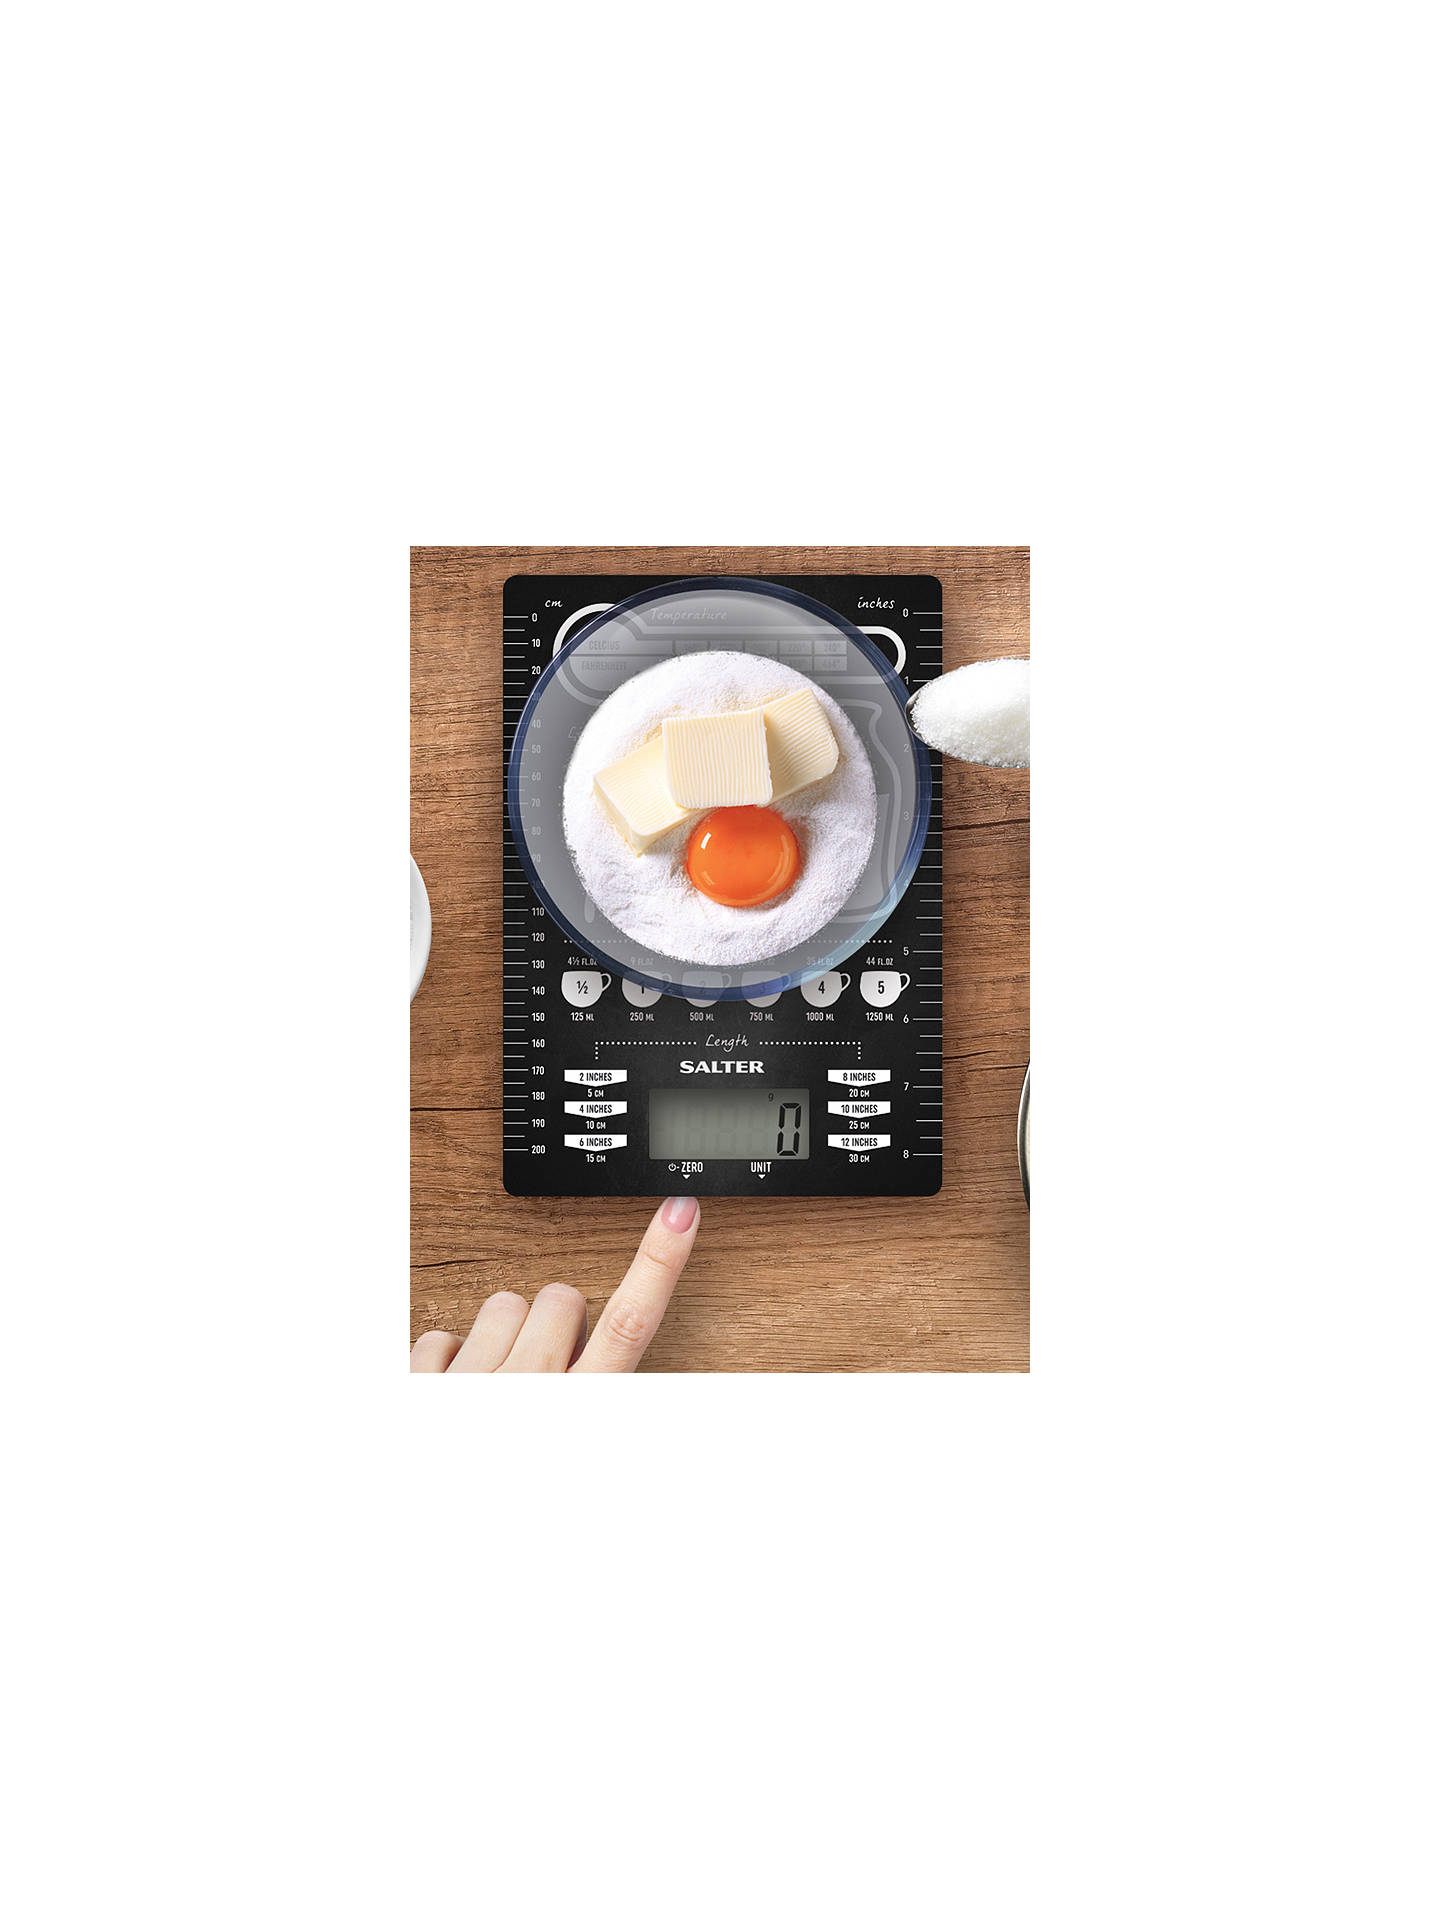 BuySalter Conversion Table Electronic Kitchen Scale, Black, 5kg Online at johnlewis.com